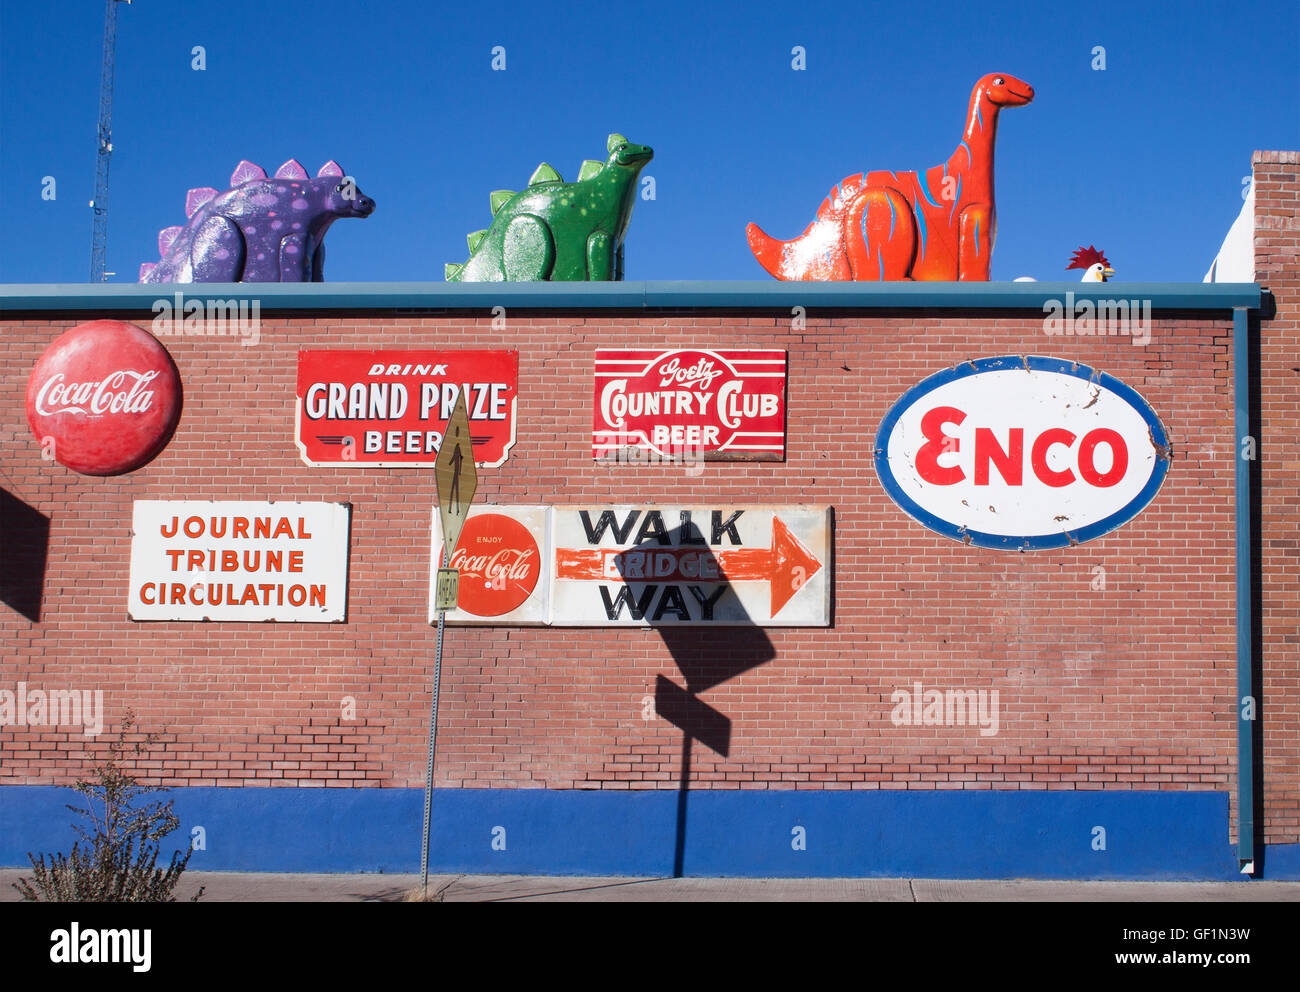 Dinosaurs on the roof of a restaurant in Hatch New Mexico - Stock Image